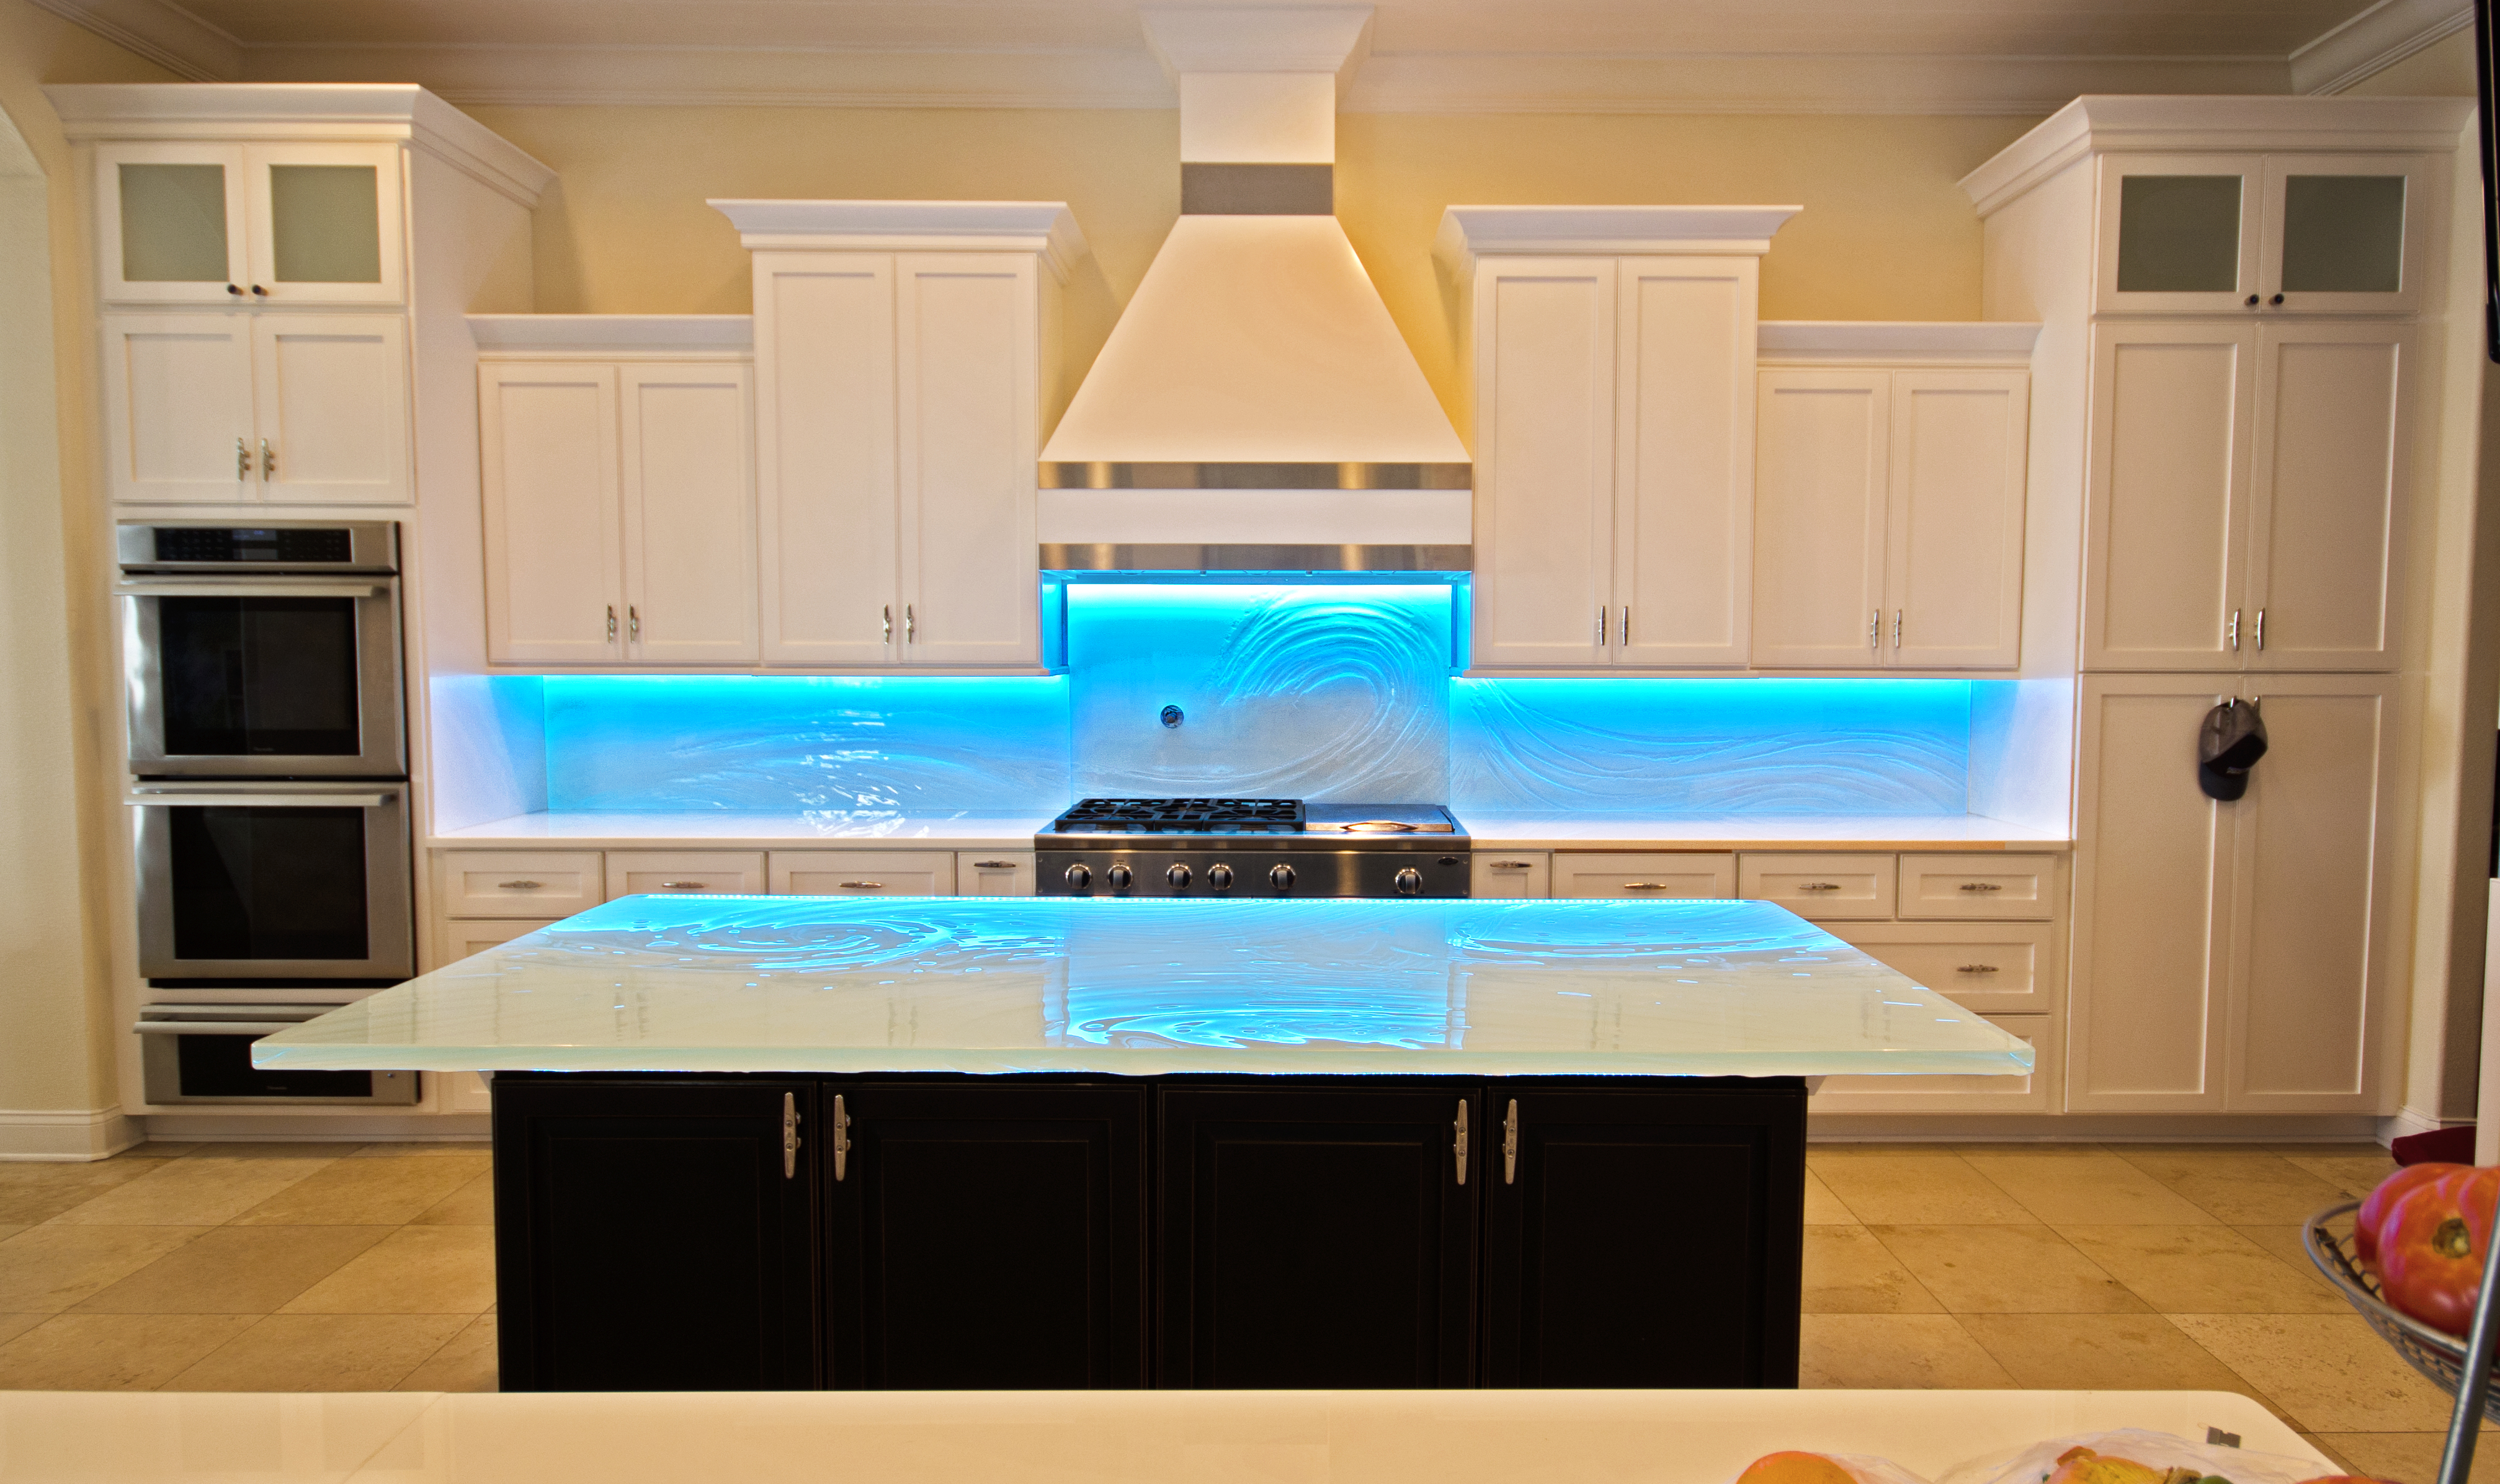 Glass Backsplash – Downing Designs